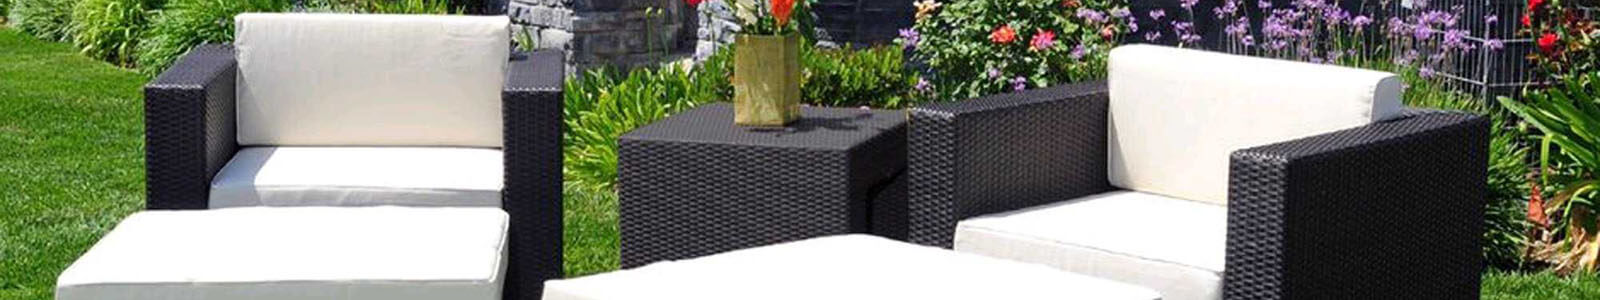 Caluco Patio Furniture & Caluco Outdoor Furniture Banner